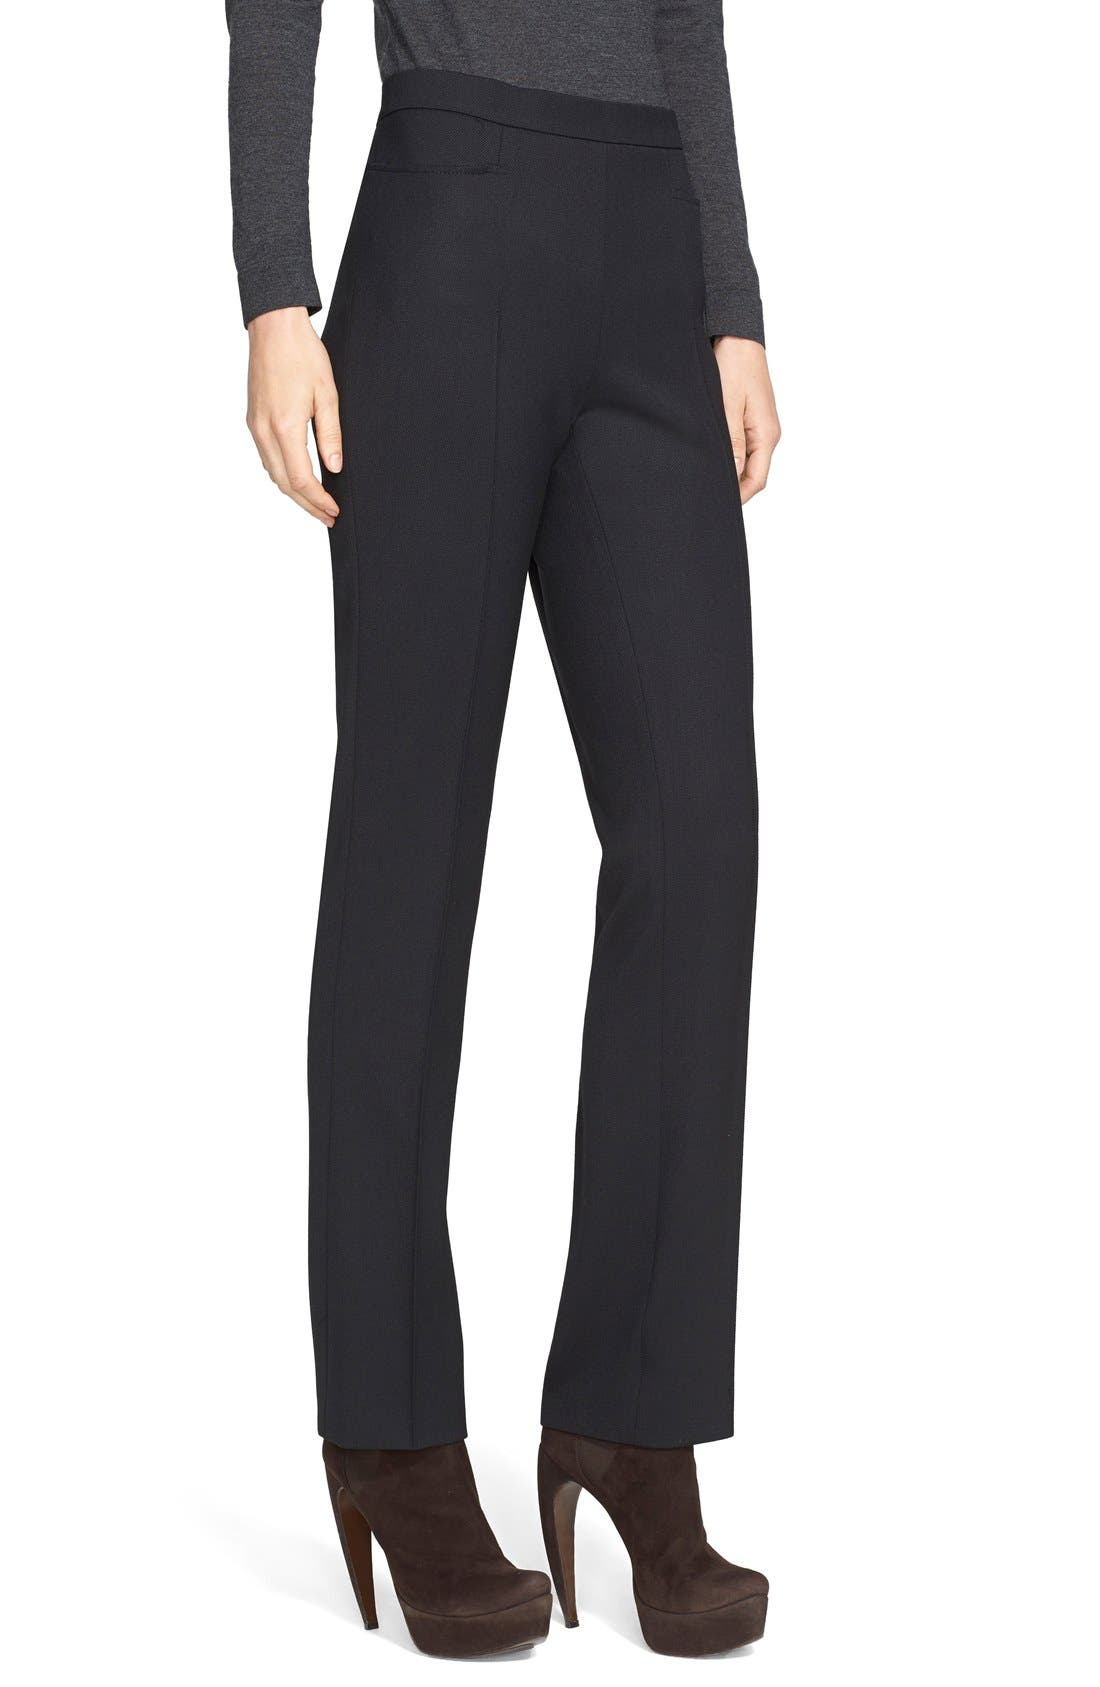 Alternate Image 1 Selected - Akris punto 'Francoise' Stretch Gabardine Pants